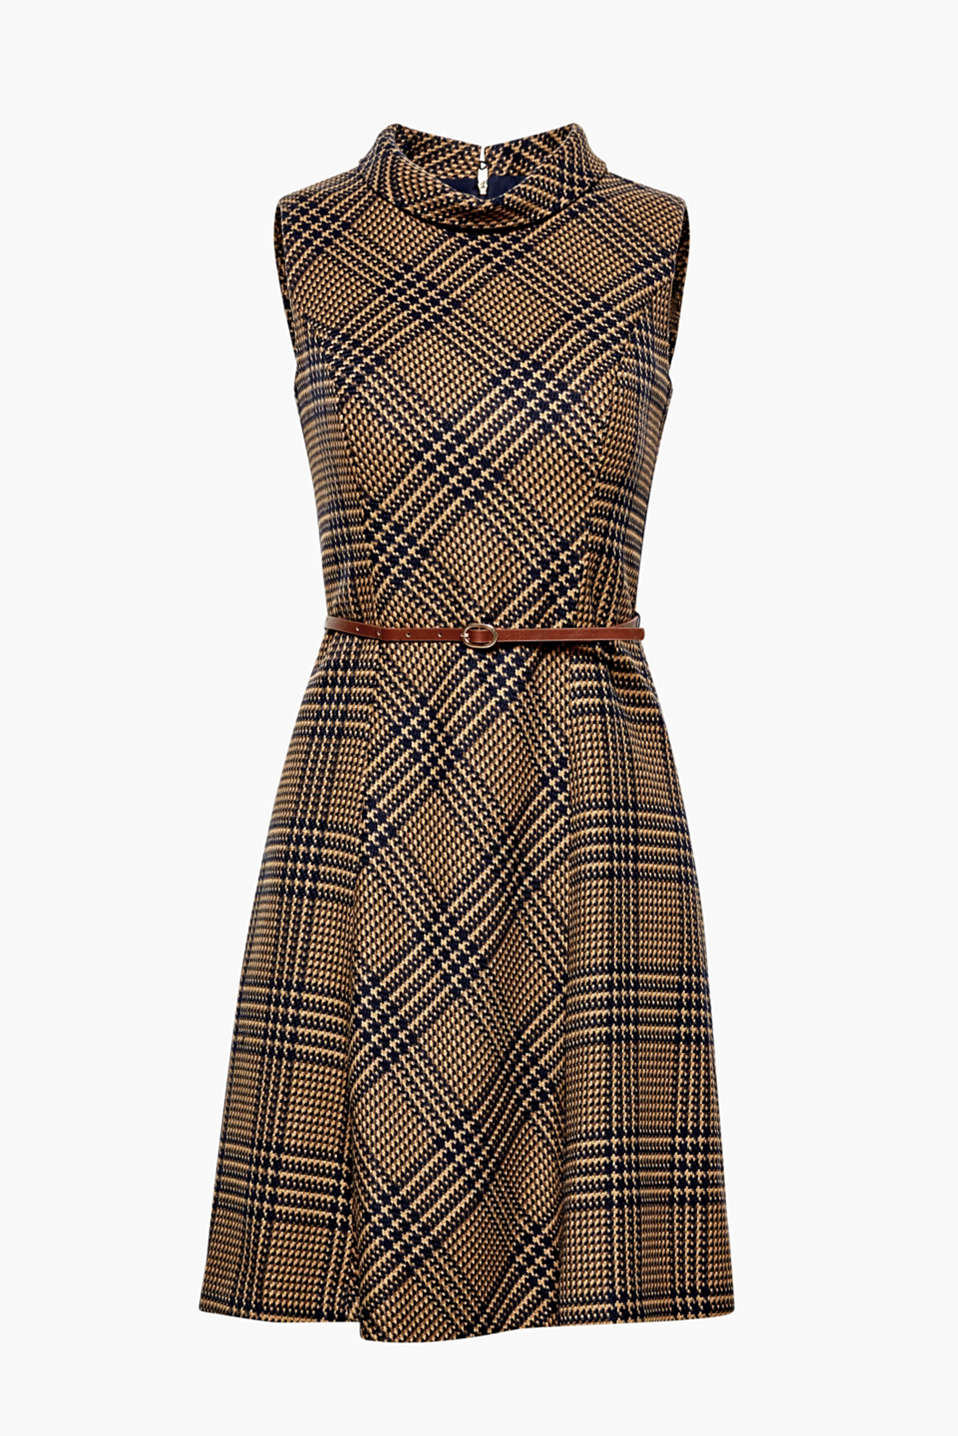 Thanks to the interwoven check pattern, this belted shift dress exudes retro charm!